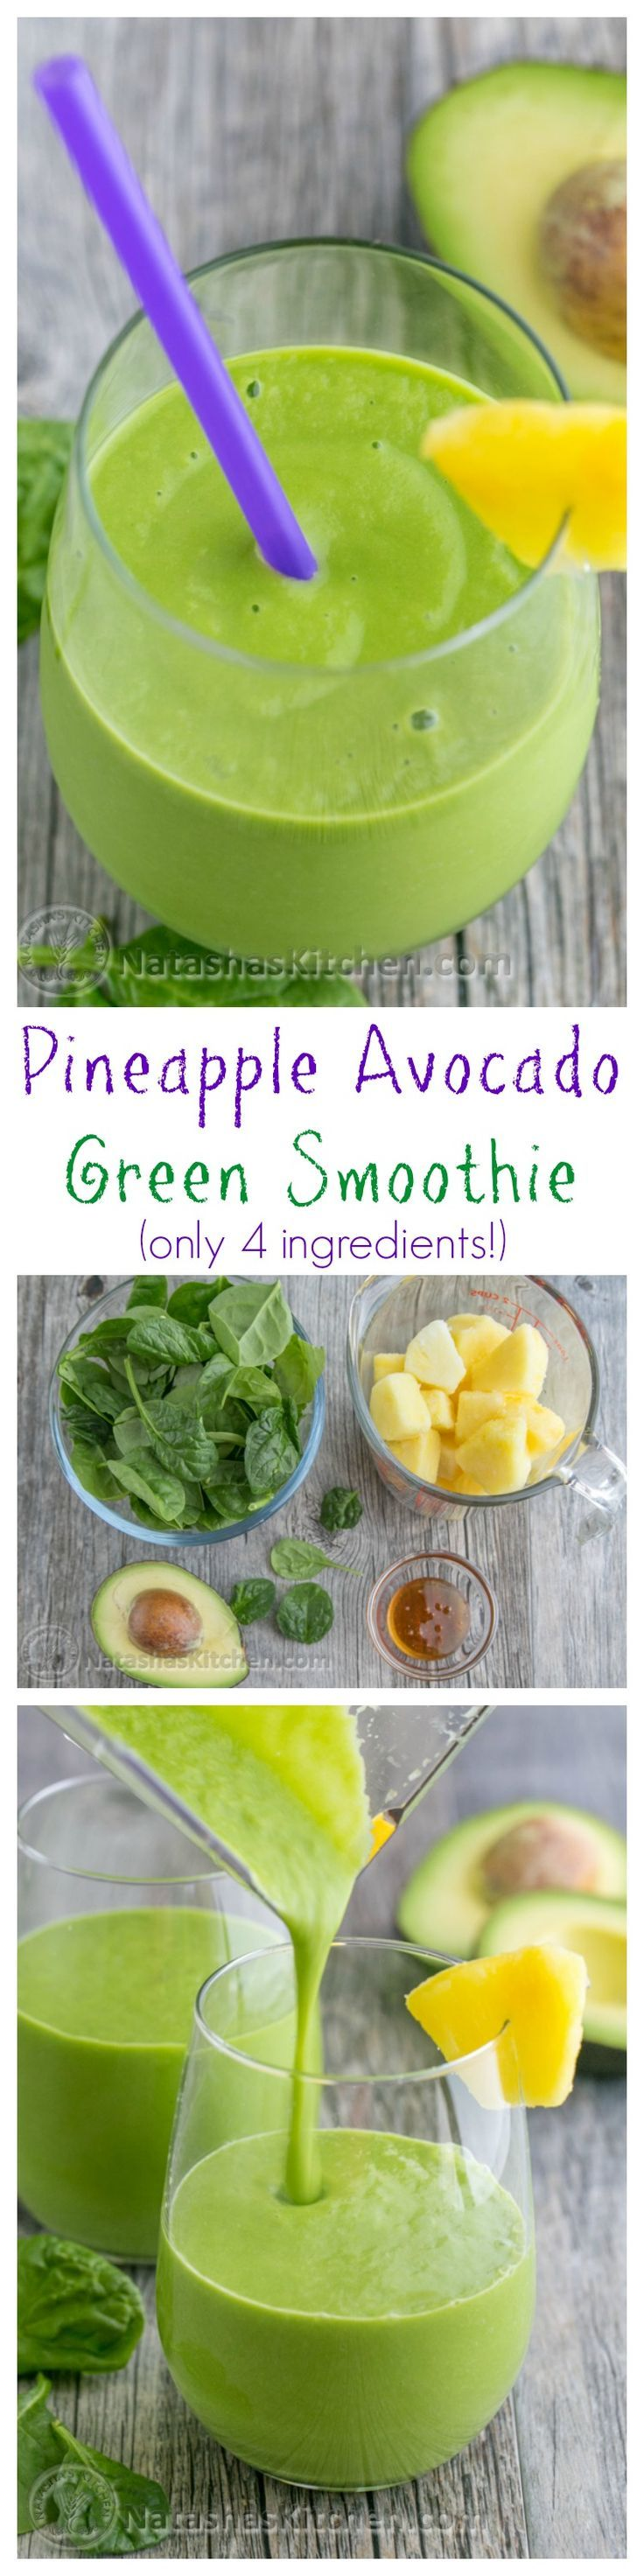 This green smoothie is delicious, nutritious, energy boosting and good till the last drop. I love how naturally vibrant and pretty it is.